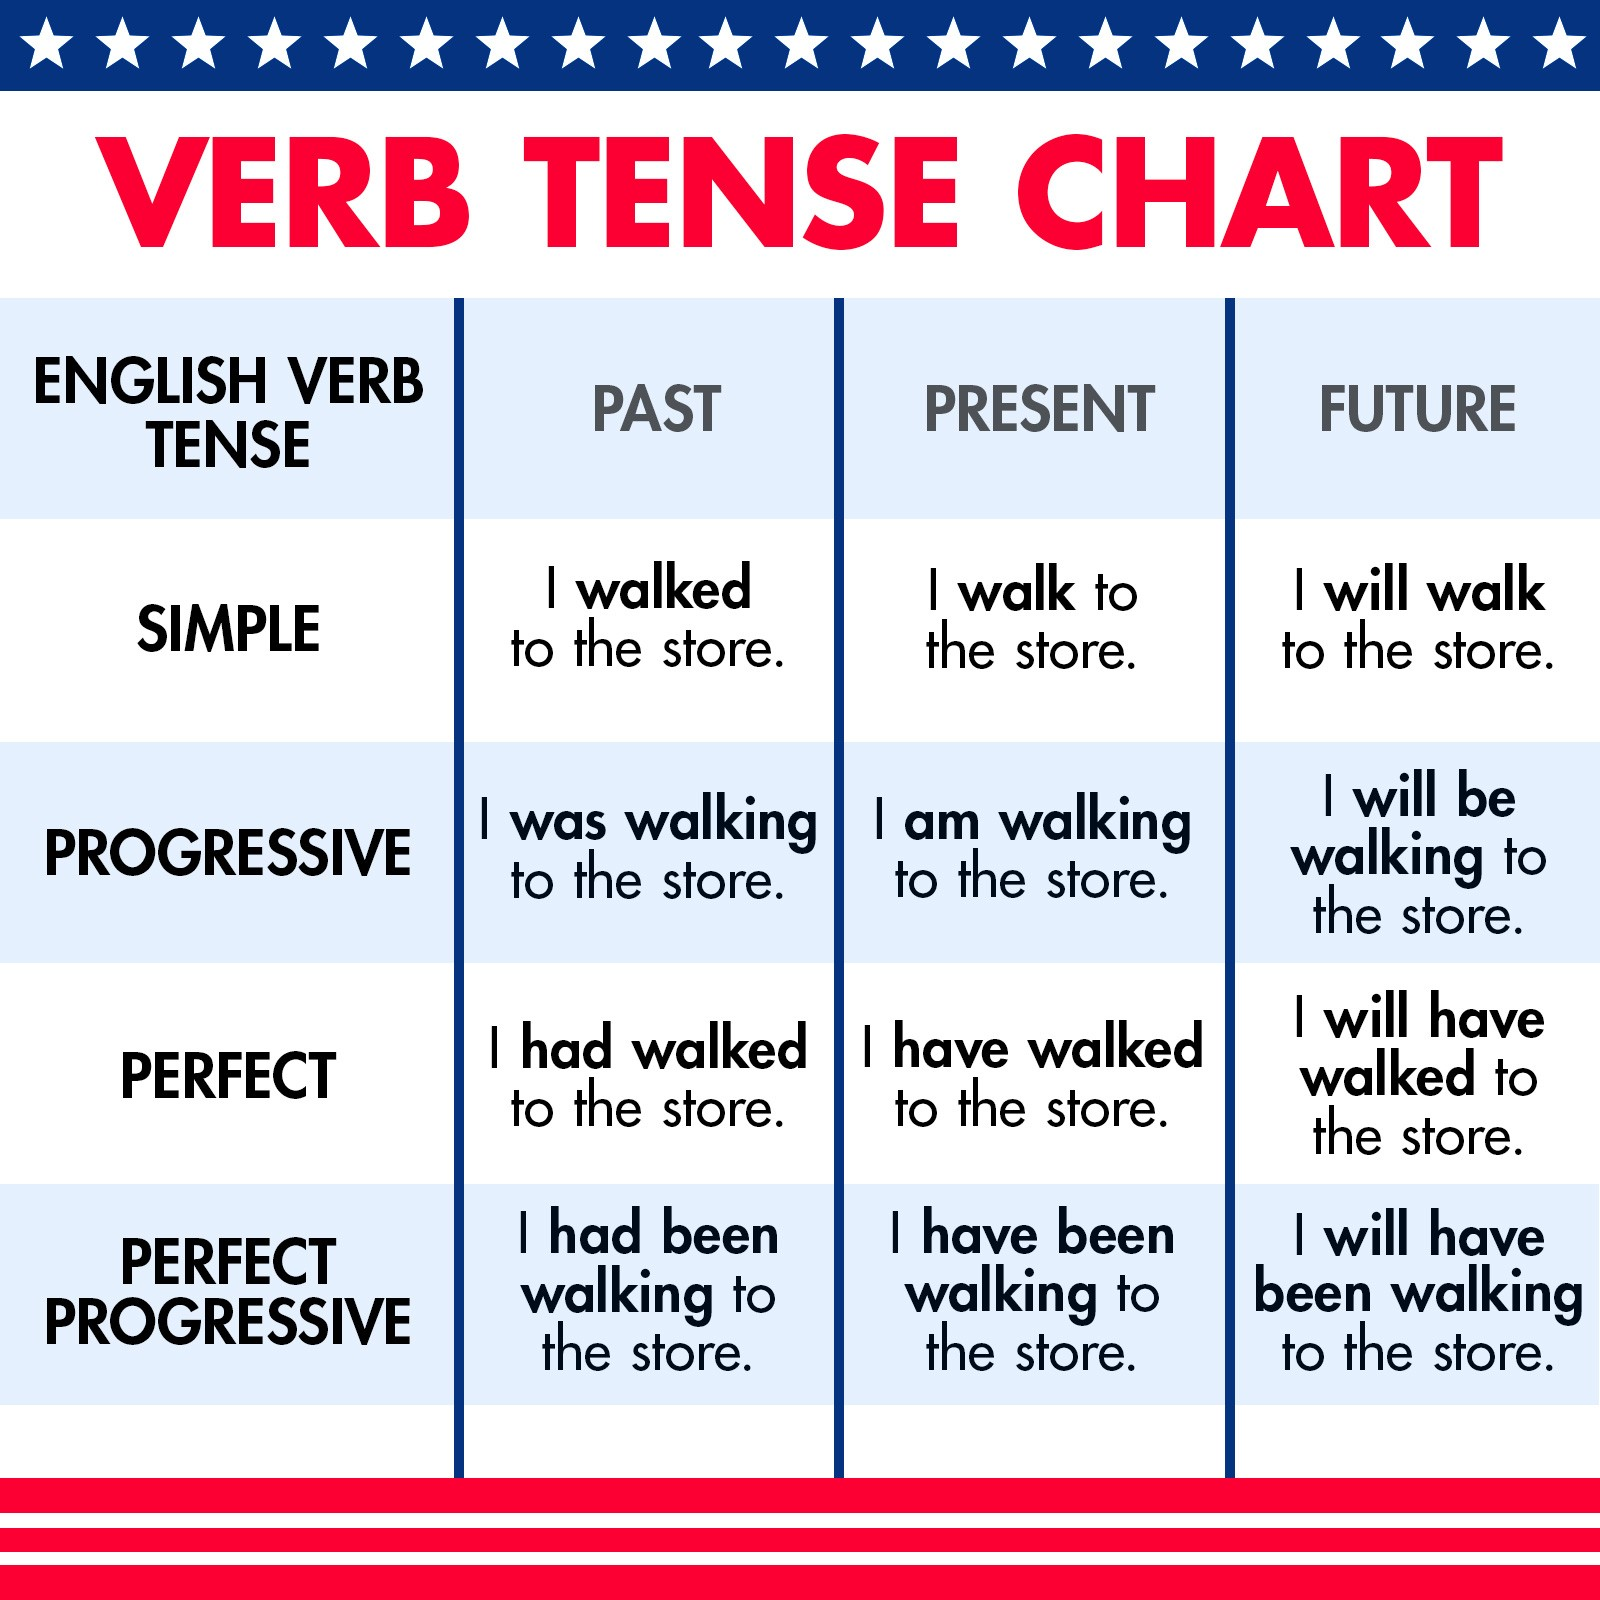 Categories of English Verb Tenses